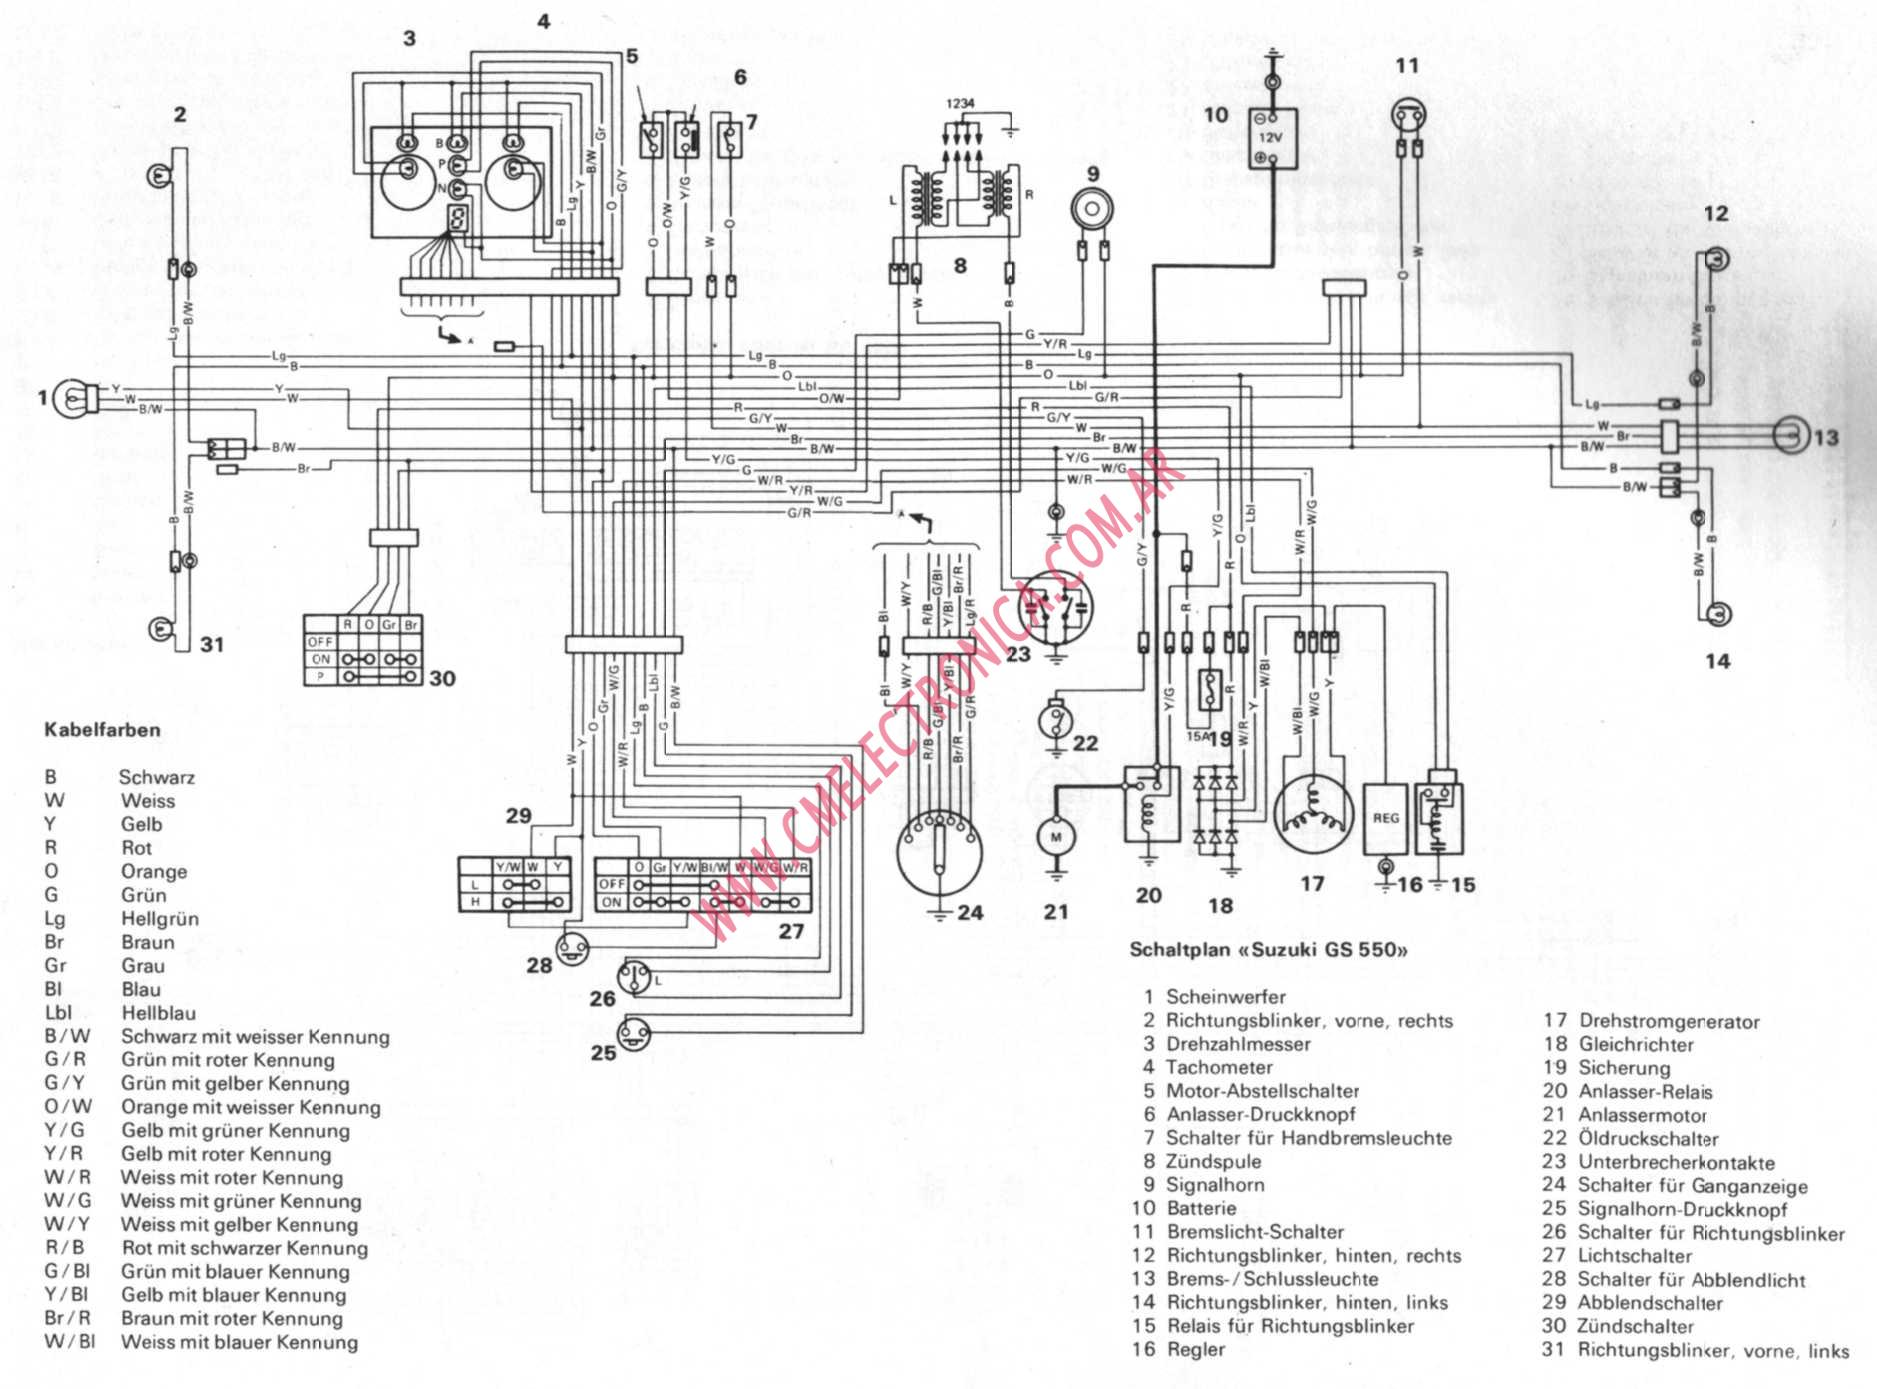 suzuki gs550 suzuki gs550 wiring diagram 1978 suzuki gs 550 wiring \u2022 free 1980 suzuki gs850 wiring diagram at crackthecode.co